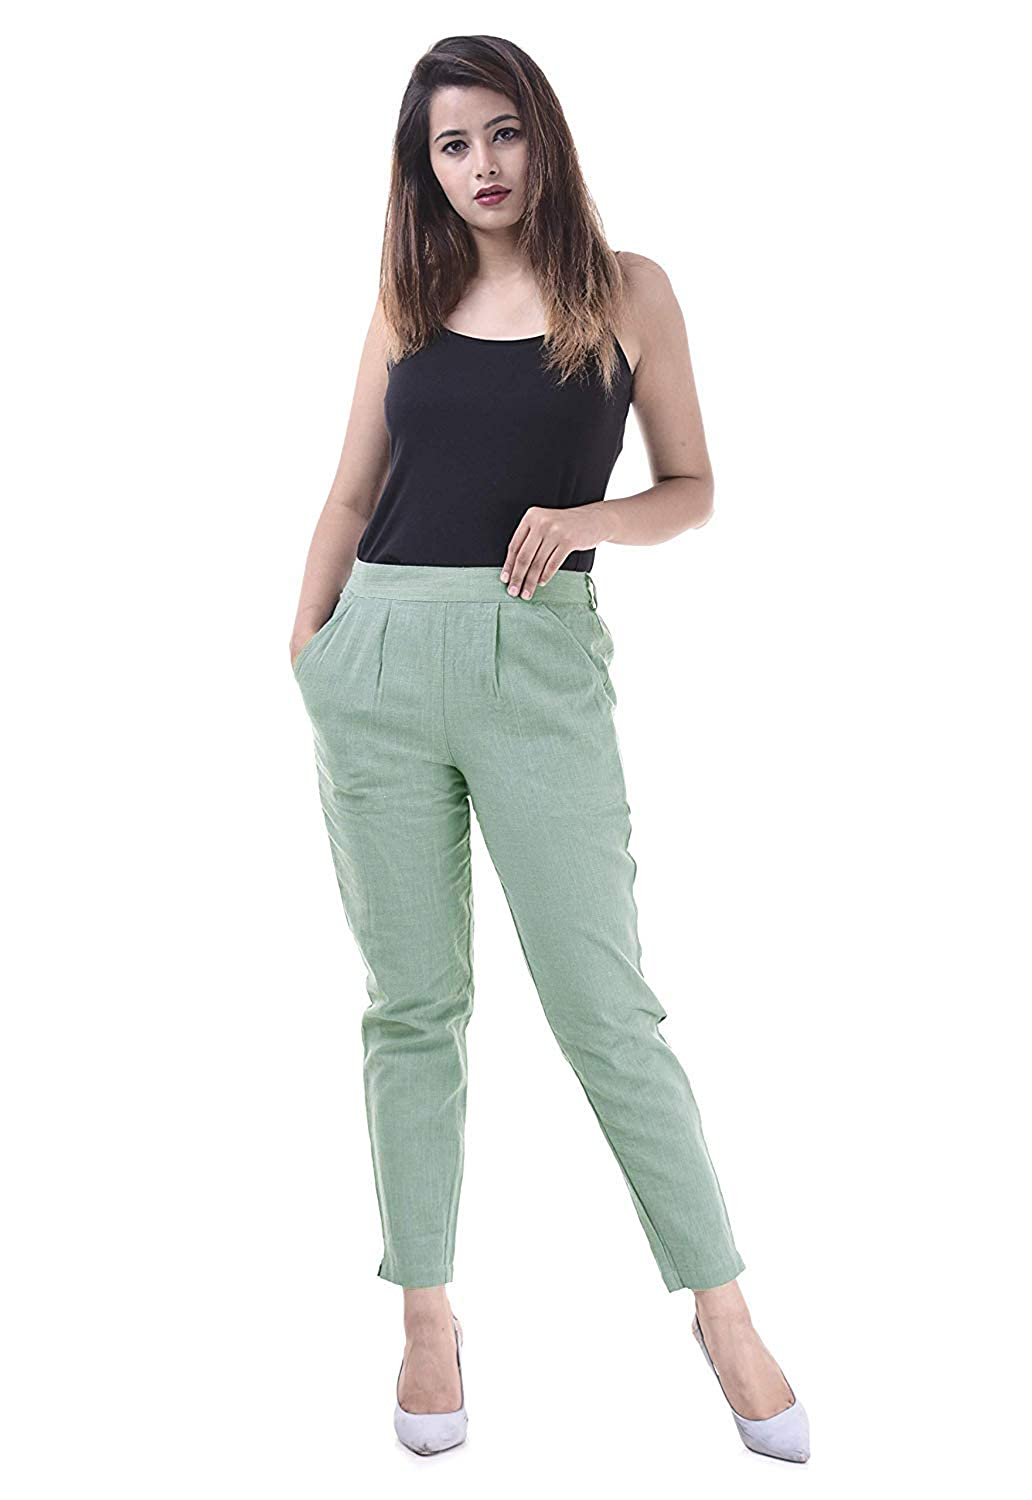 Buy Stylemyth veshh Cotton Regular Fit Trousers for Ladies/Girls/Women's at  Amazon.in